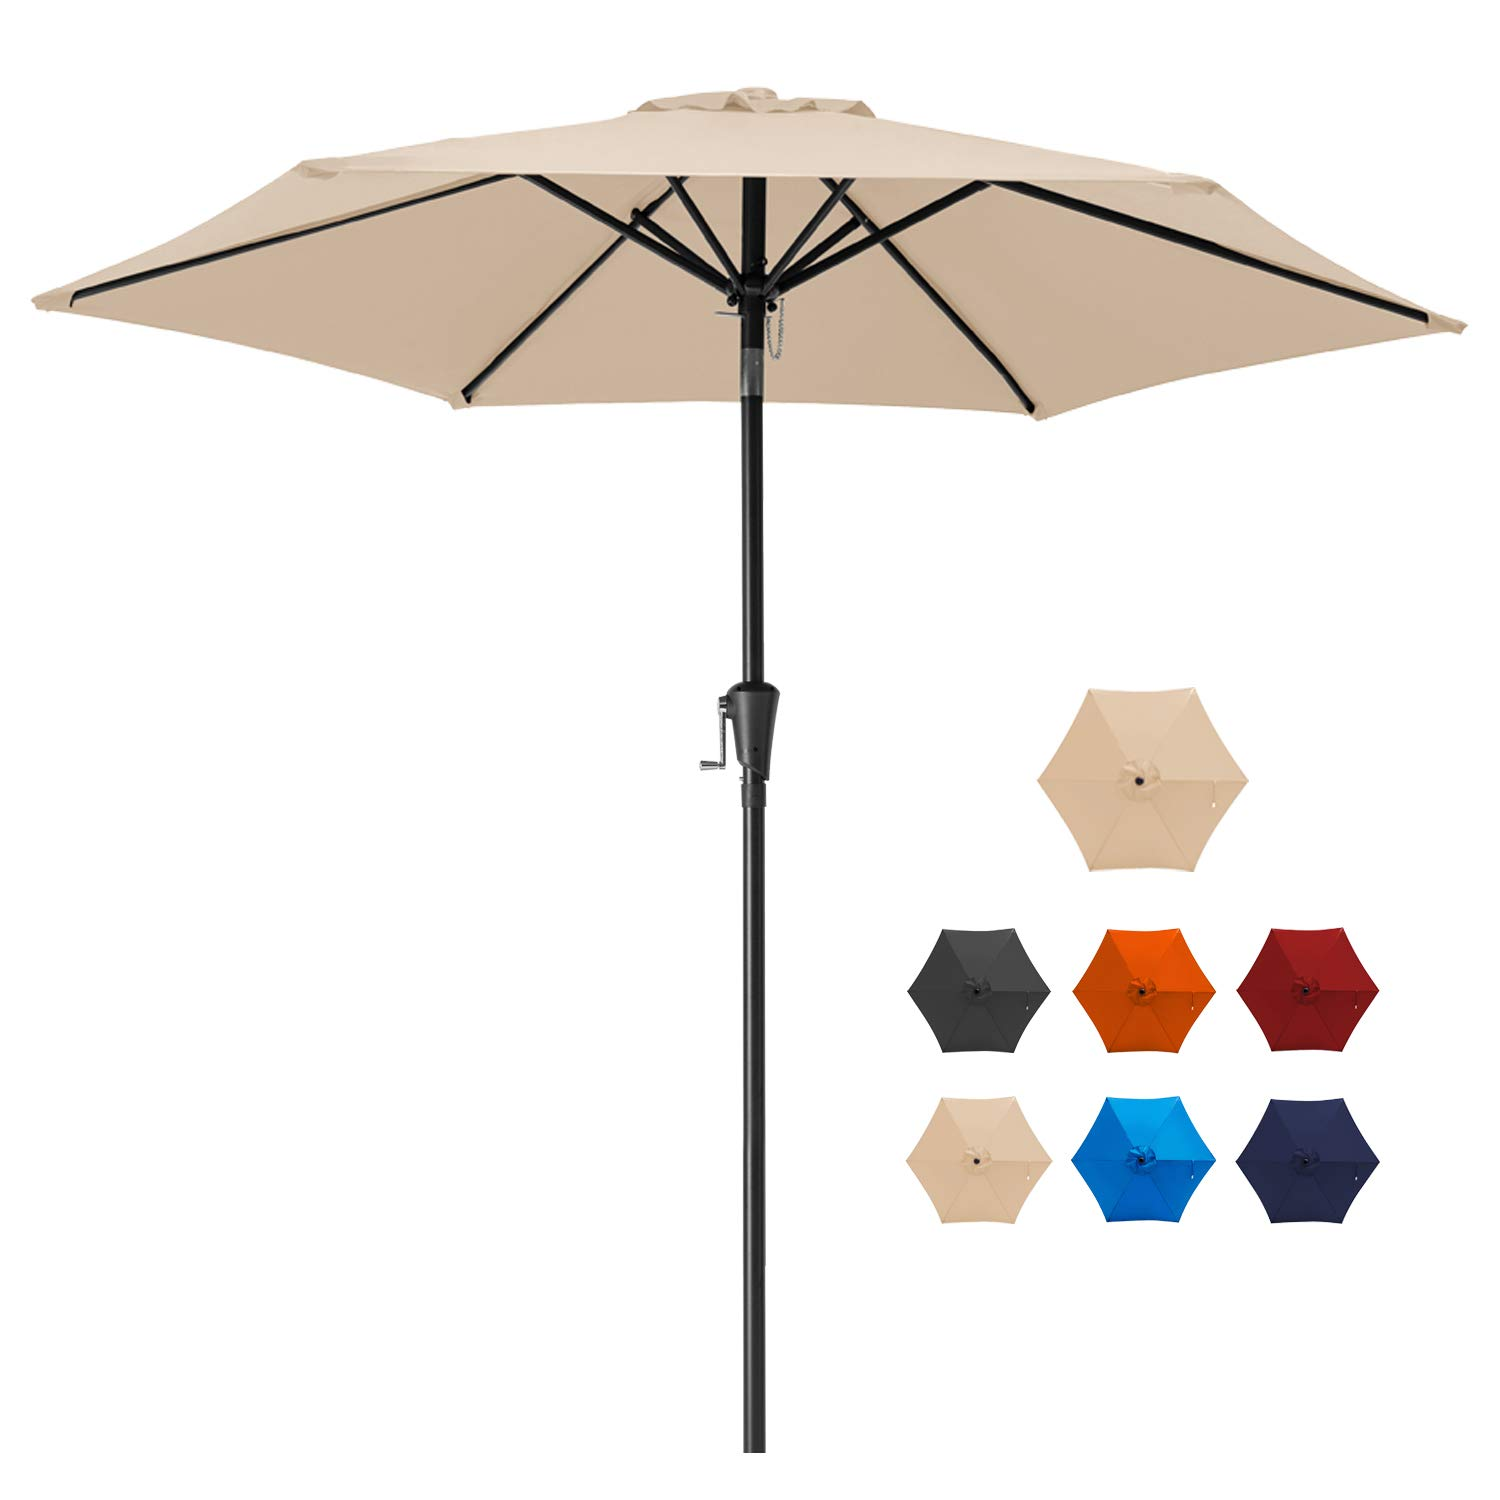 MUCHENGHY 7.5ft Patio Table Umbrellas UV Protection Large Outdoor Umbrella Sunbrella Wind Resistant with Push Button Tilt and Crank,6 Sturdy Ribs